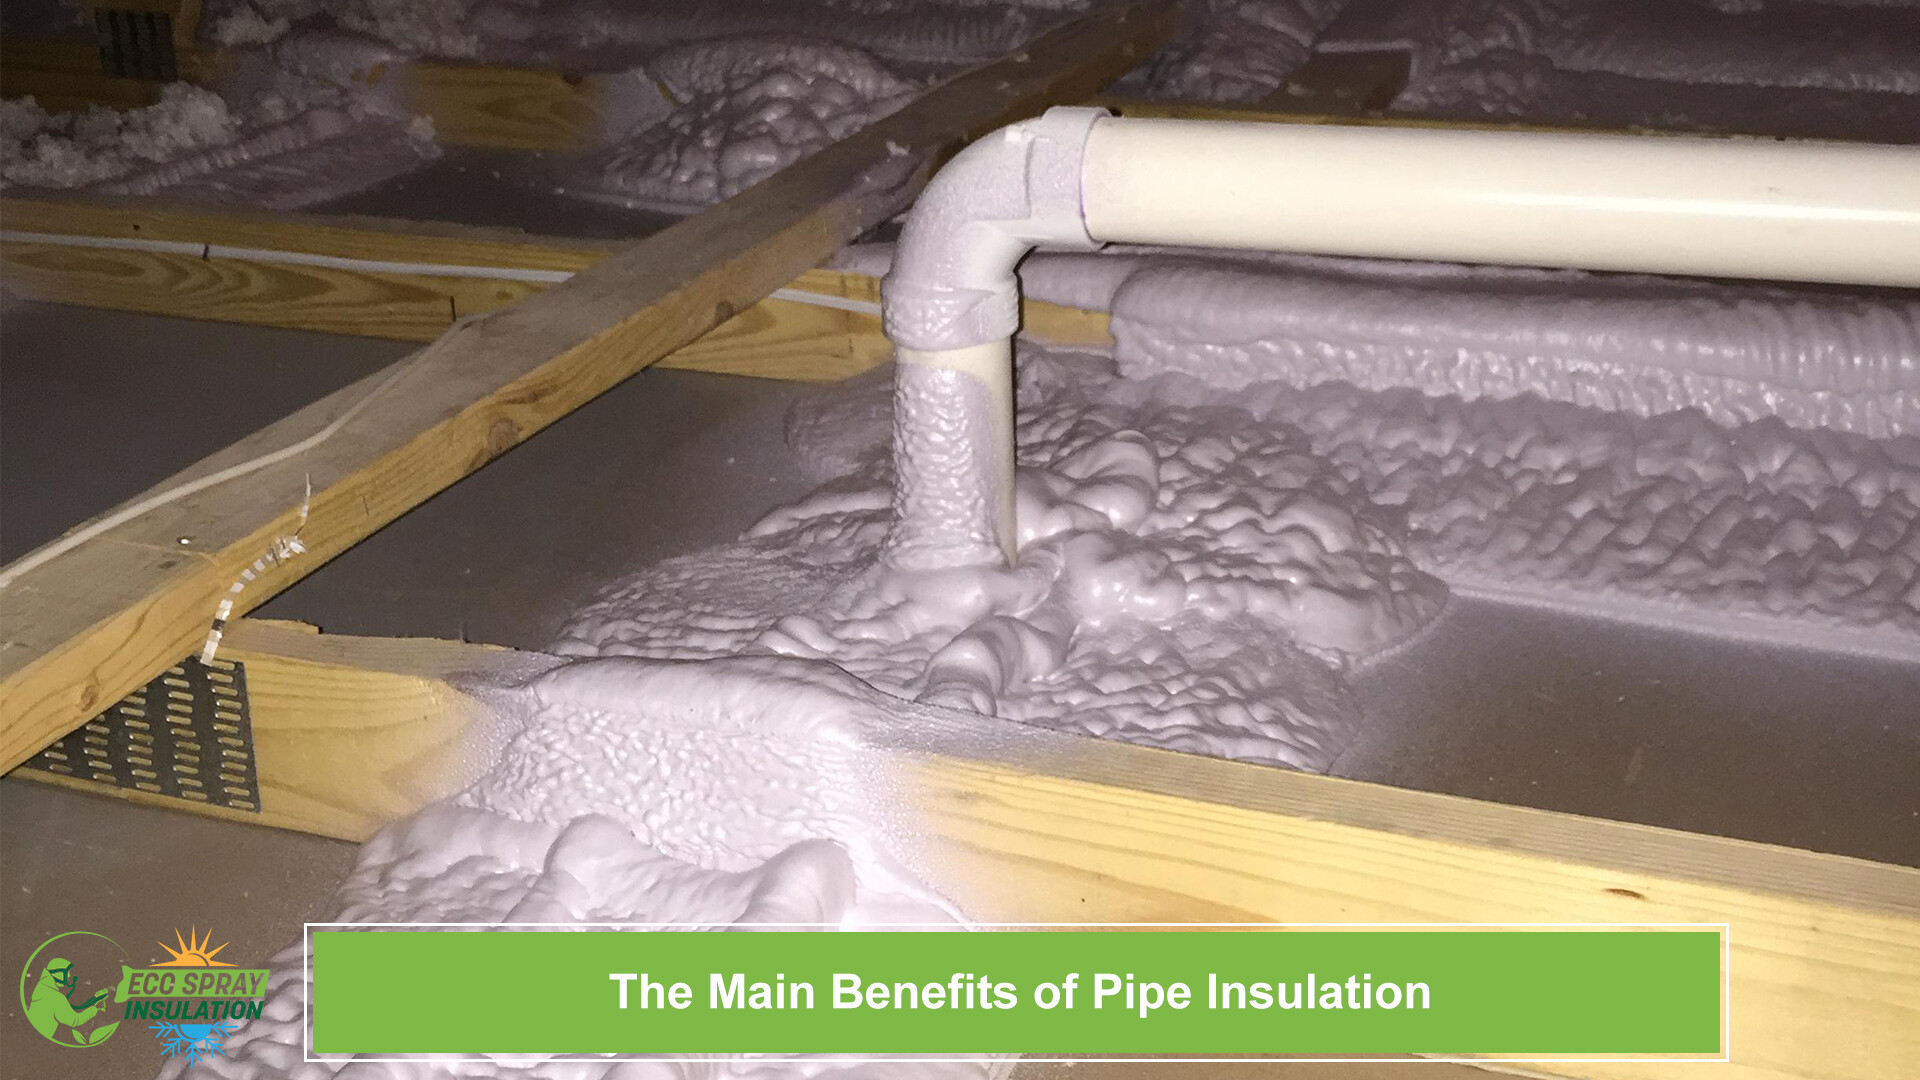 The Main Benefits of Pipe Insulation